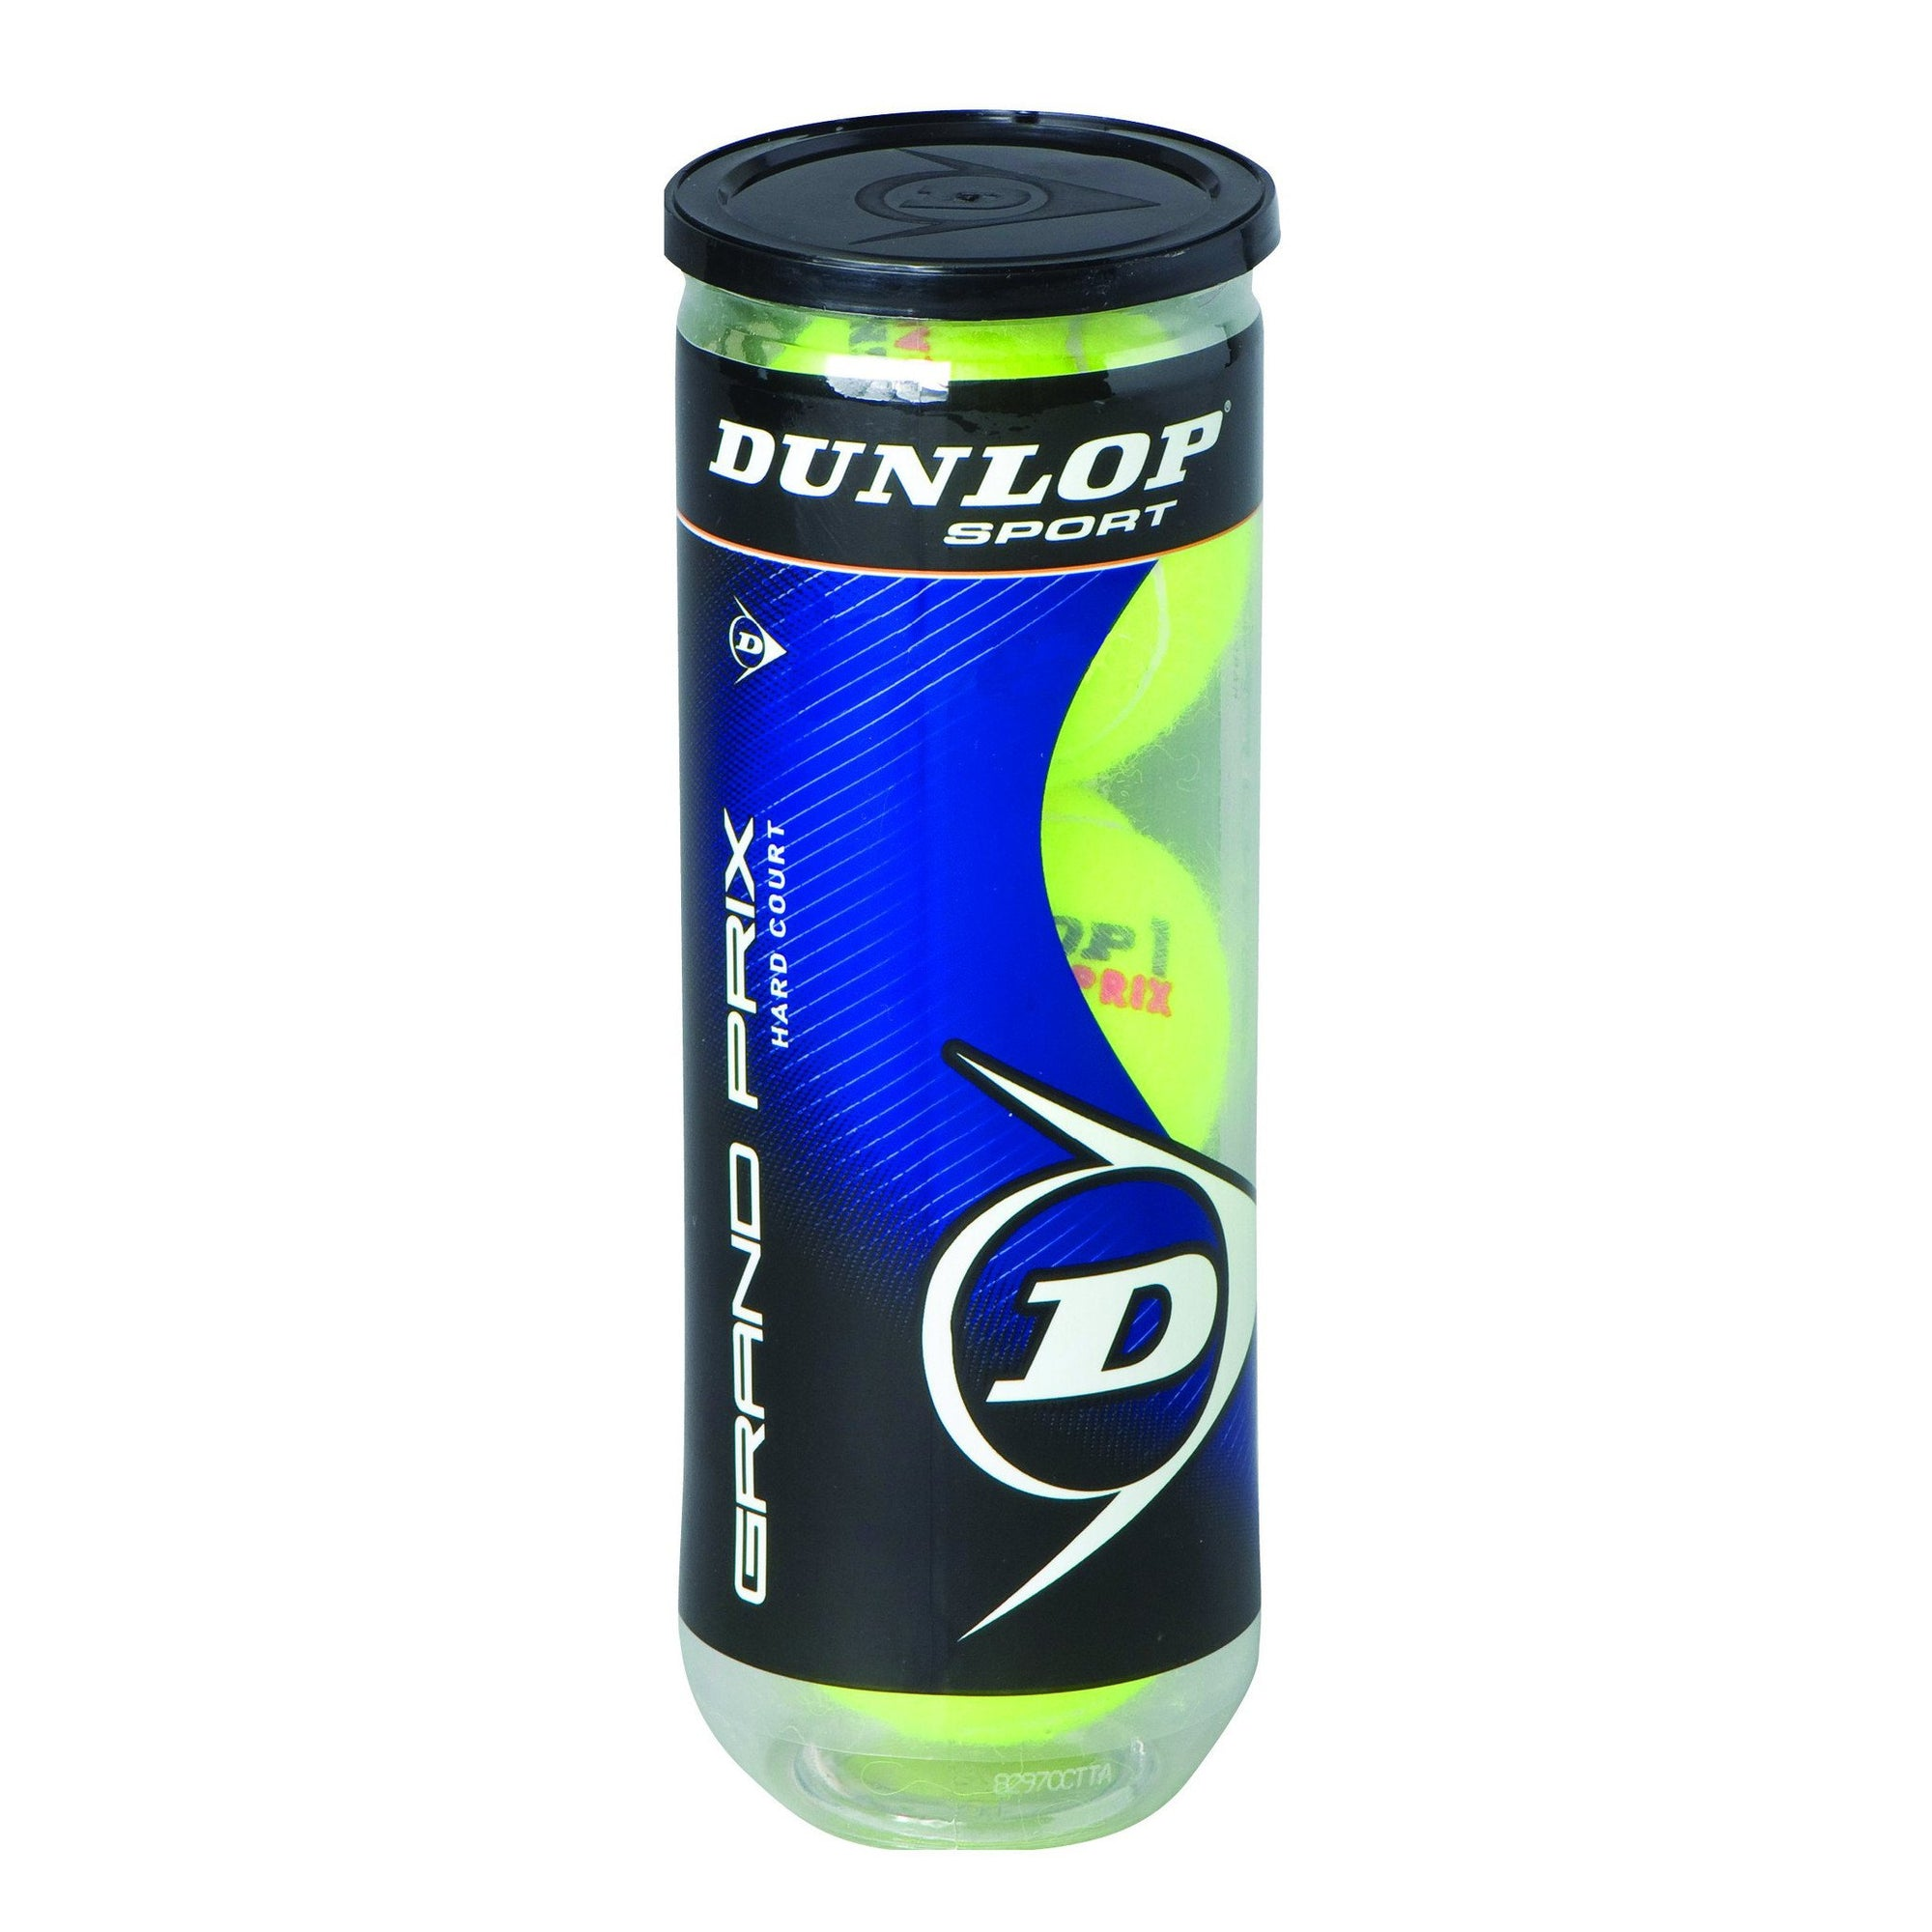 Dunlop - Grand Prix Hard Court Balls